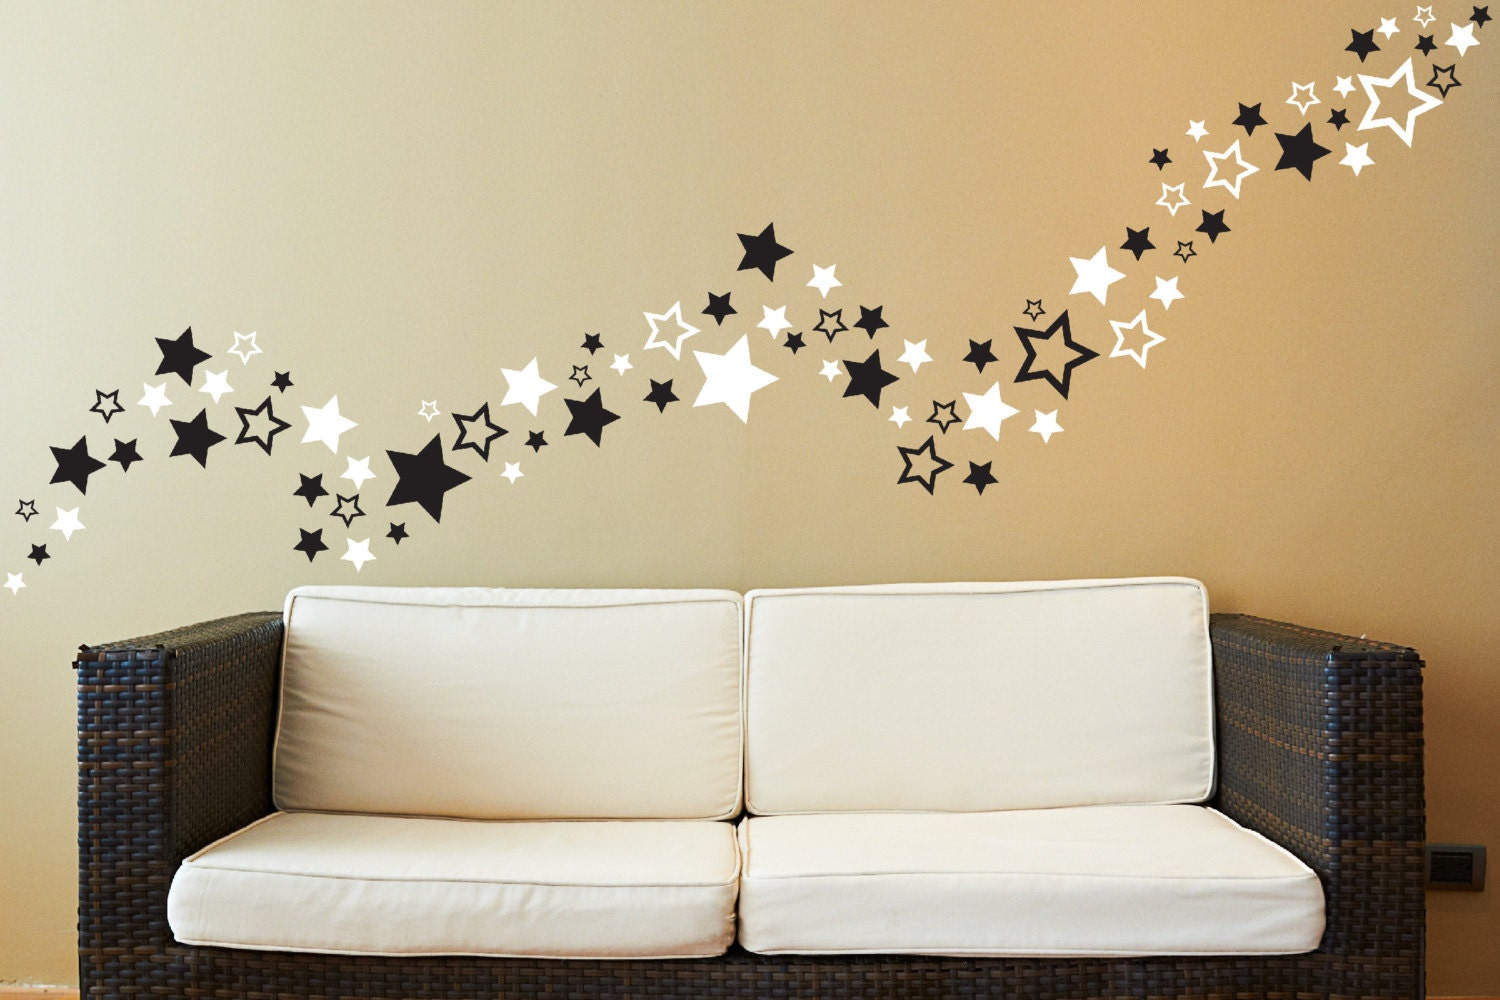 80 star wall decals stars wall decals decals star - Stars for walls decorating ...